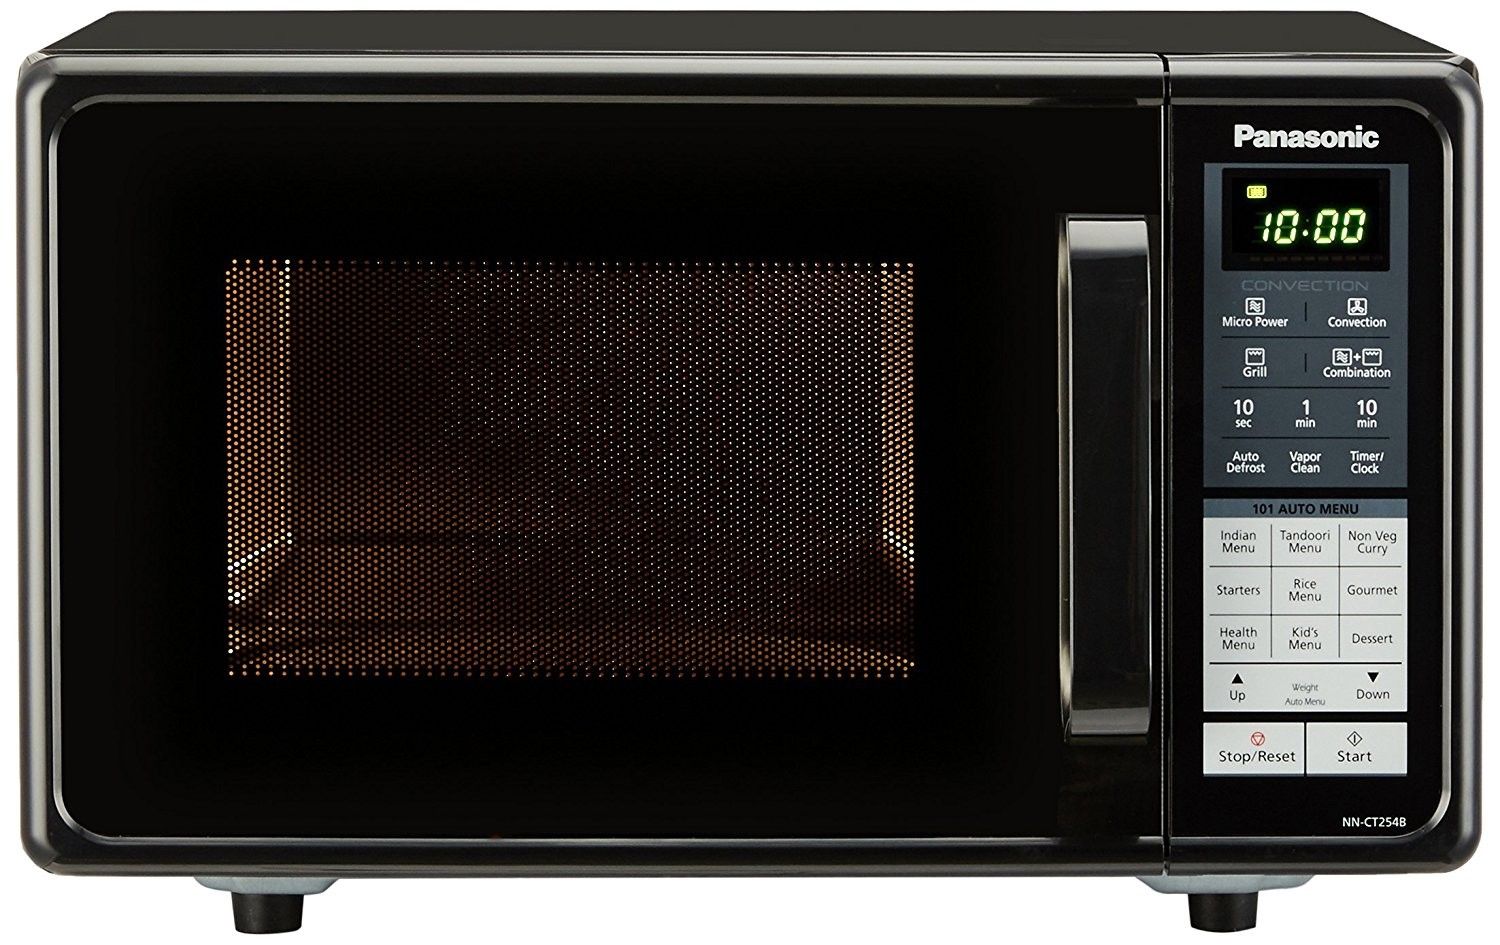 Panasonic 20 L Convection Microwave Oven (NN-CT254BFDG, Black)